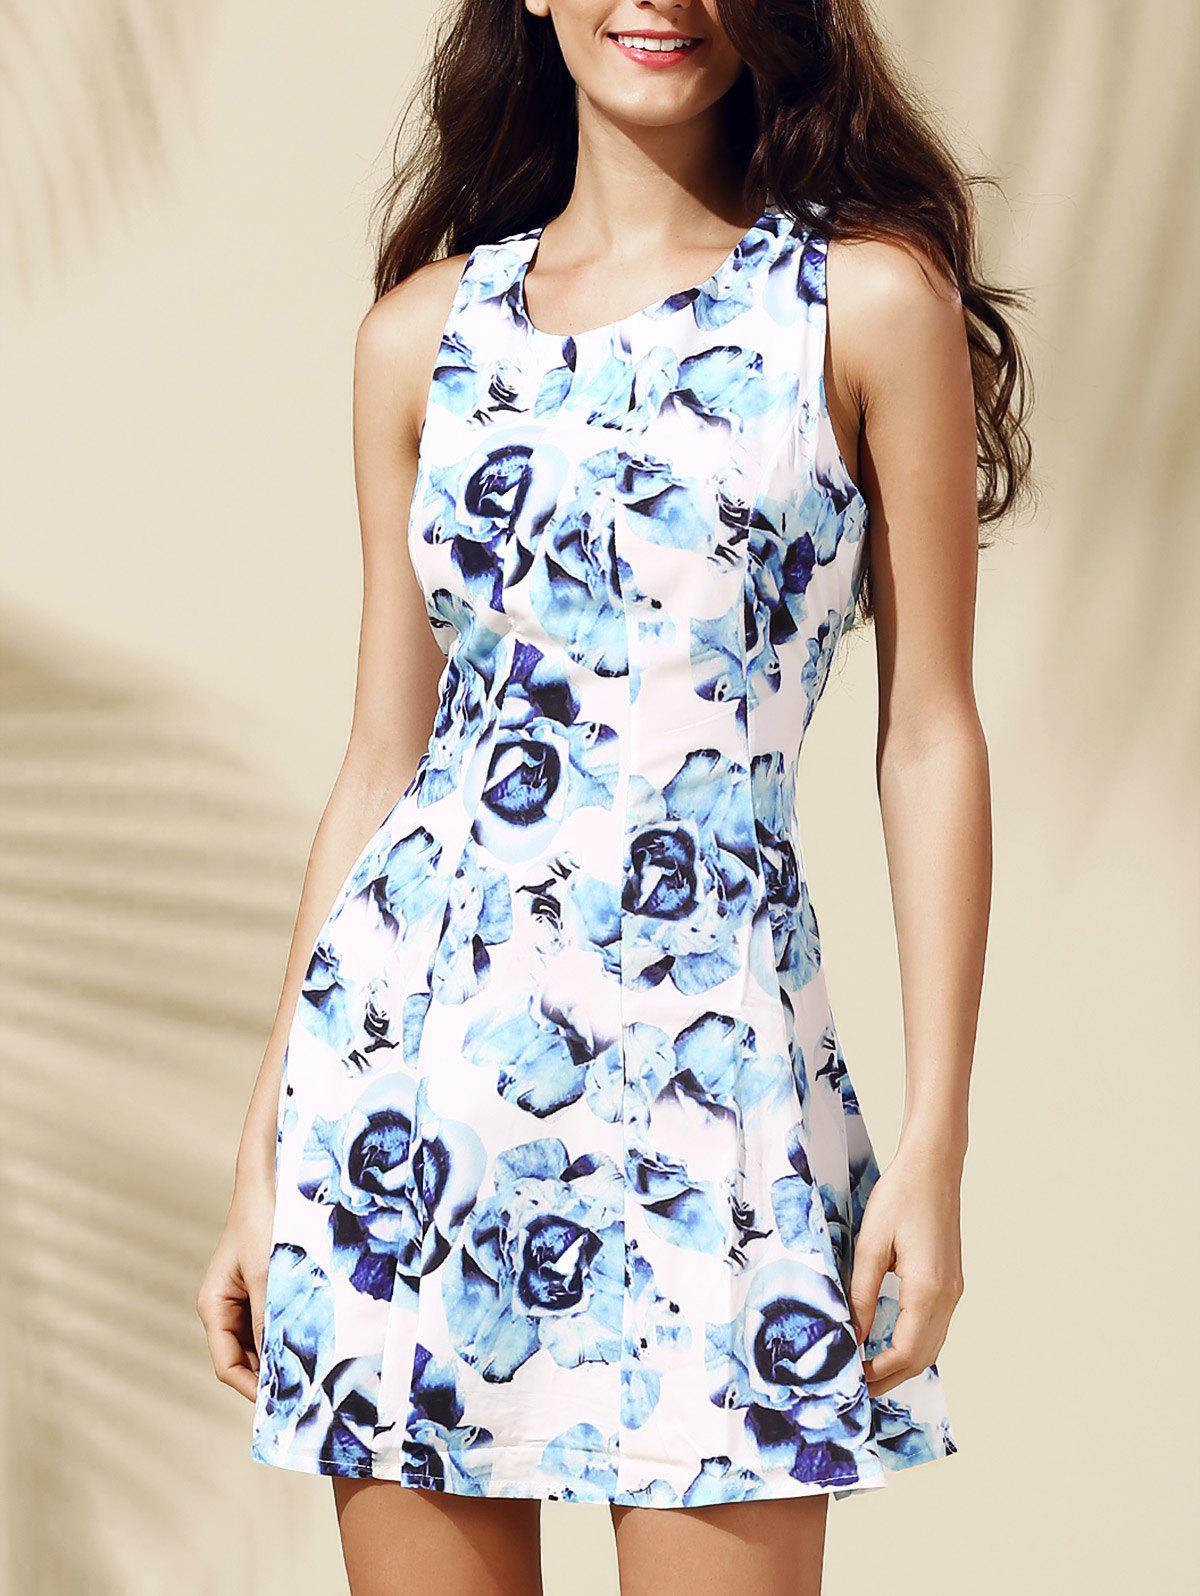 Casual Floral Print Sleeveless Round Collar Dress For Women - BLUE S